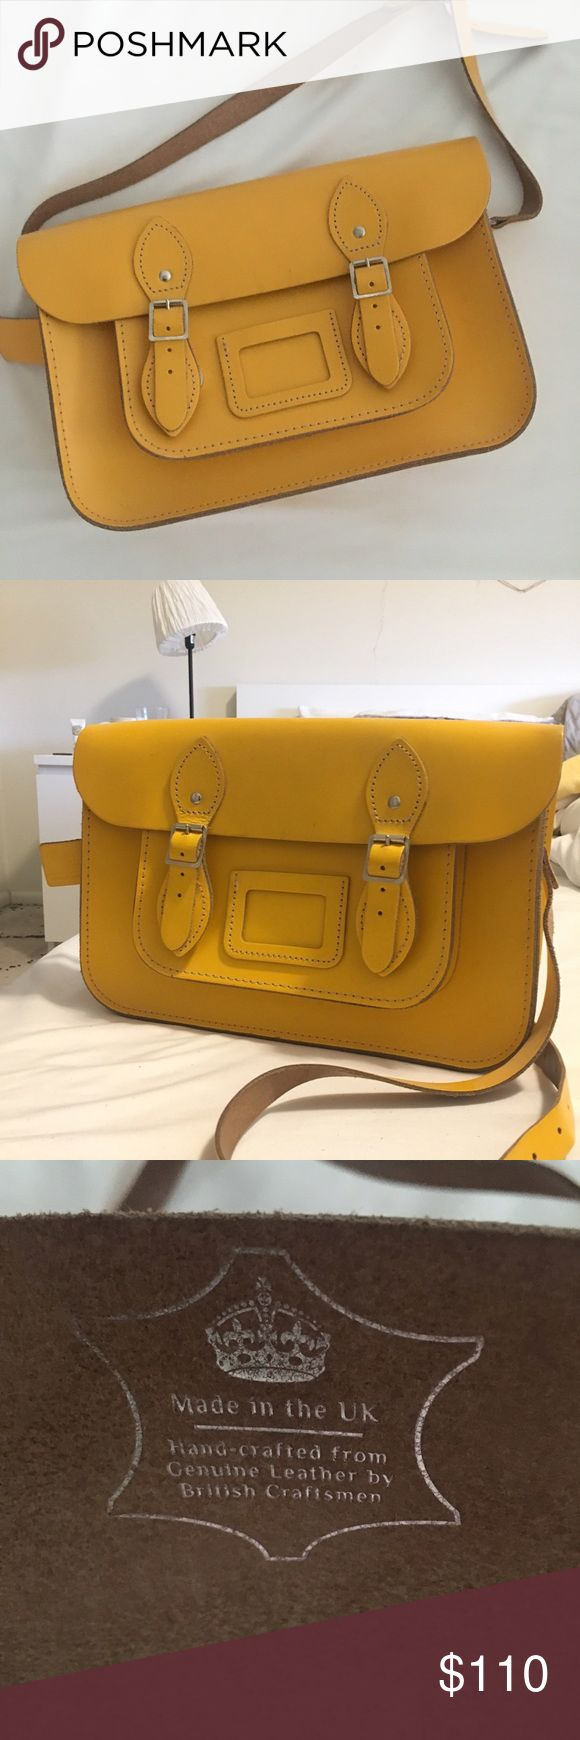 Classic 13 inch Cambridge satchel messenger bag In yellow. Very lightly used with no stains and very minor signs of wear The Cambridge Satchel Company Bags Satchels